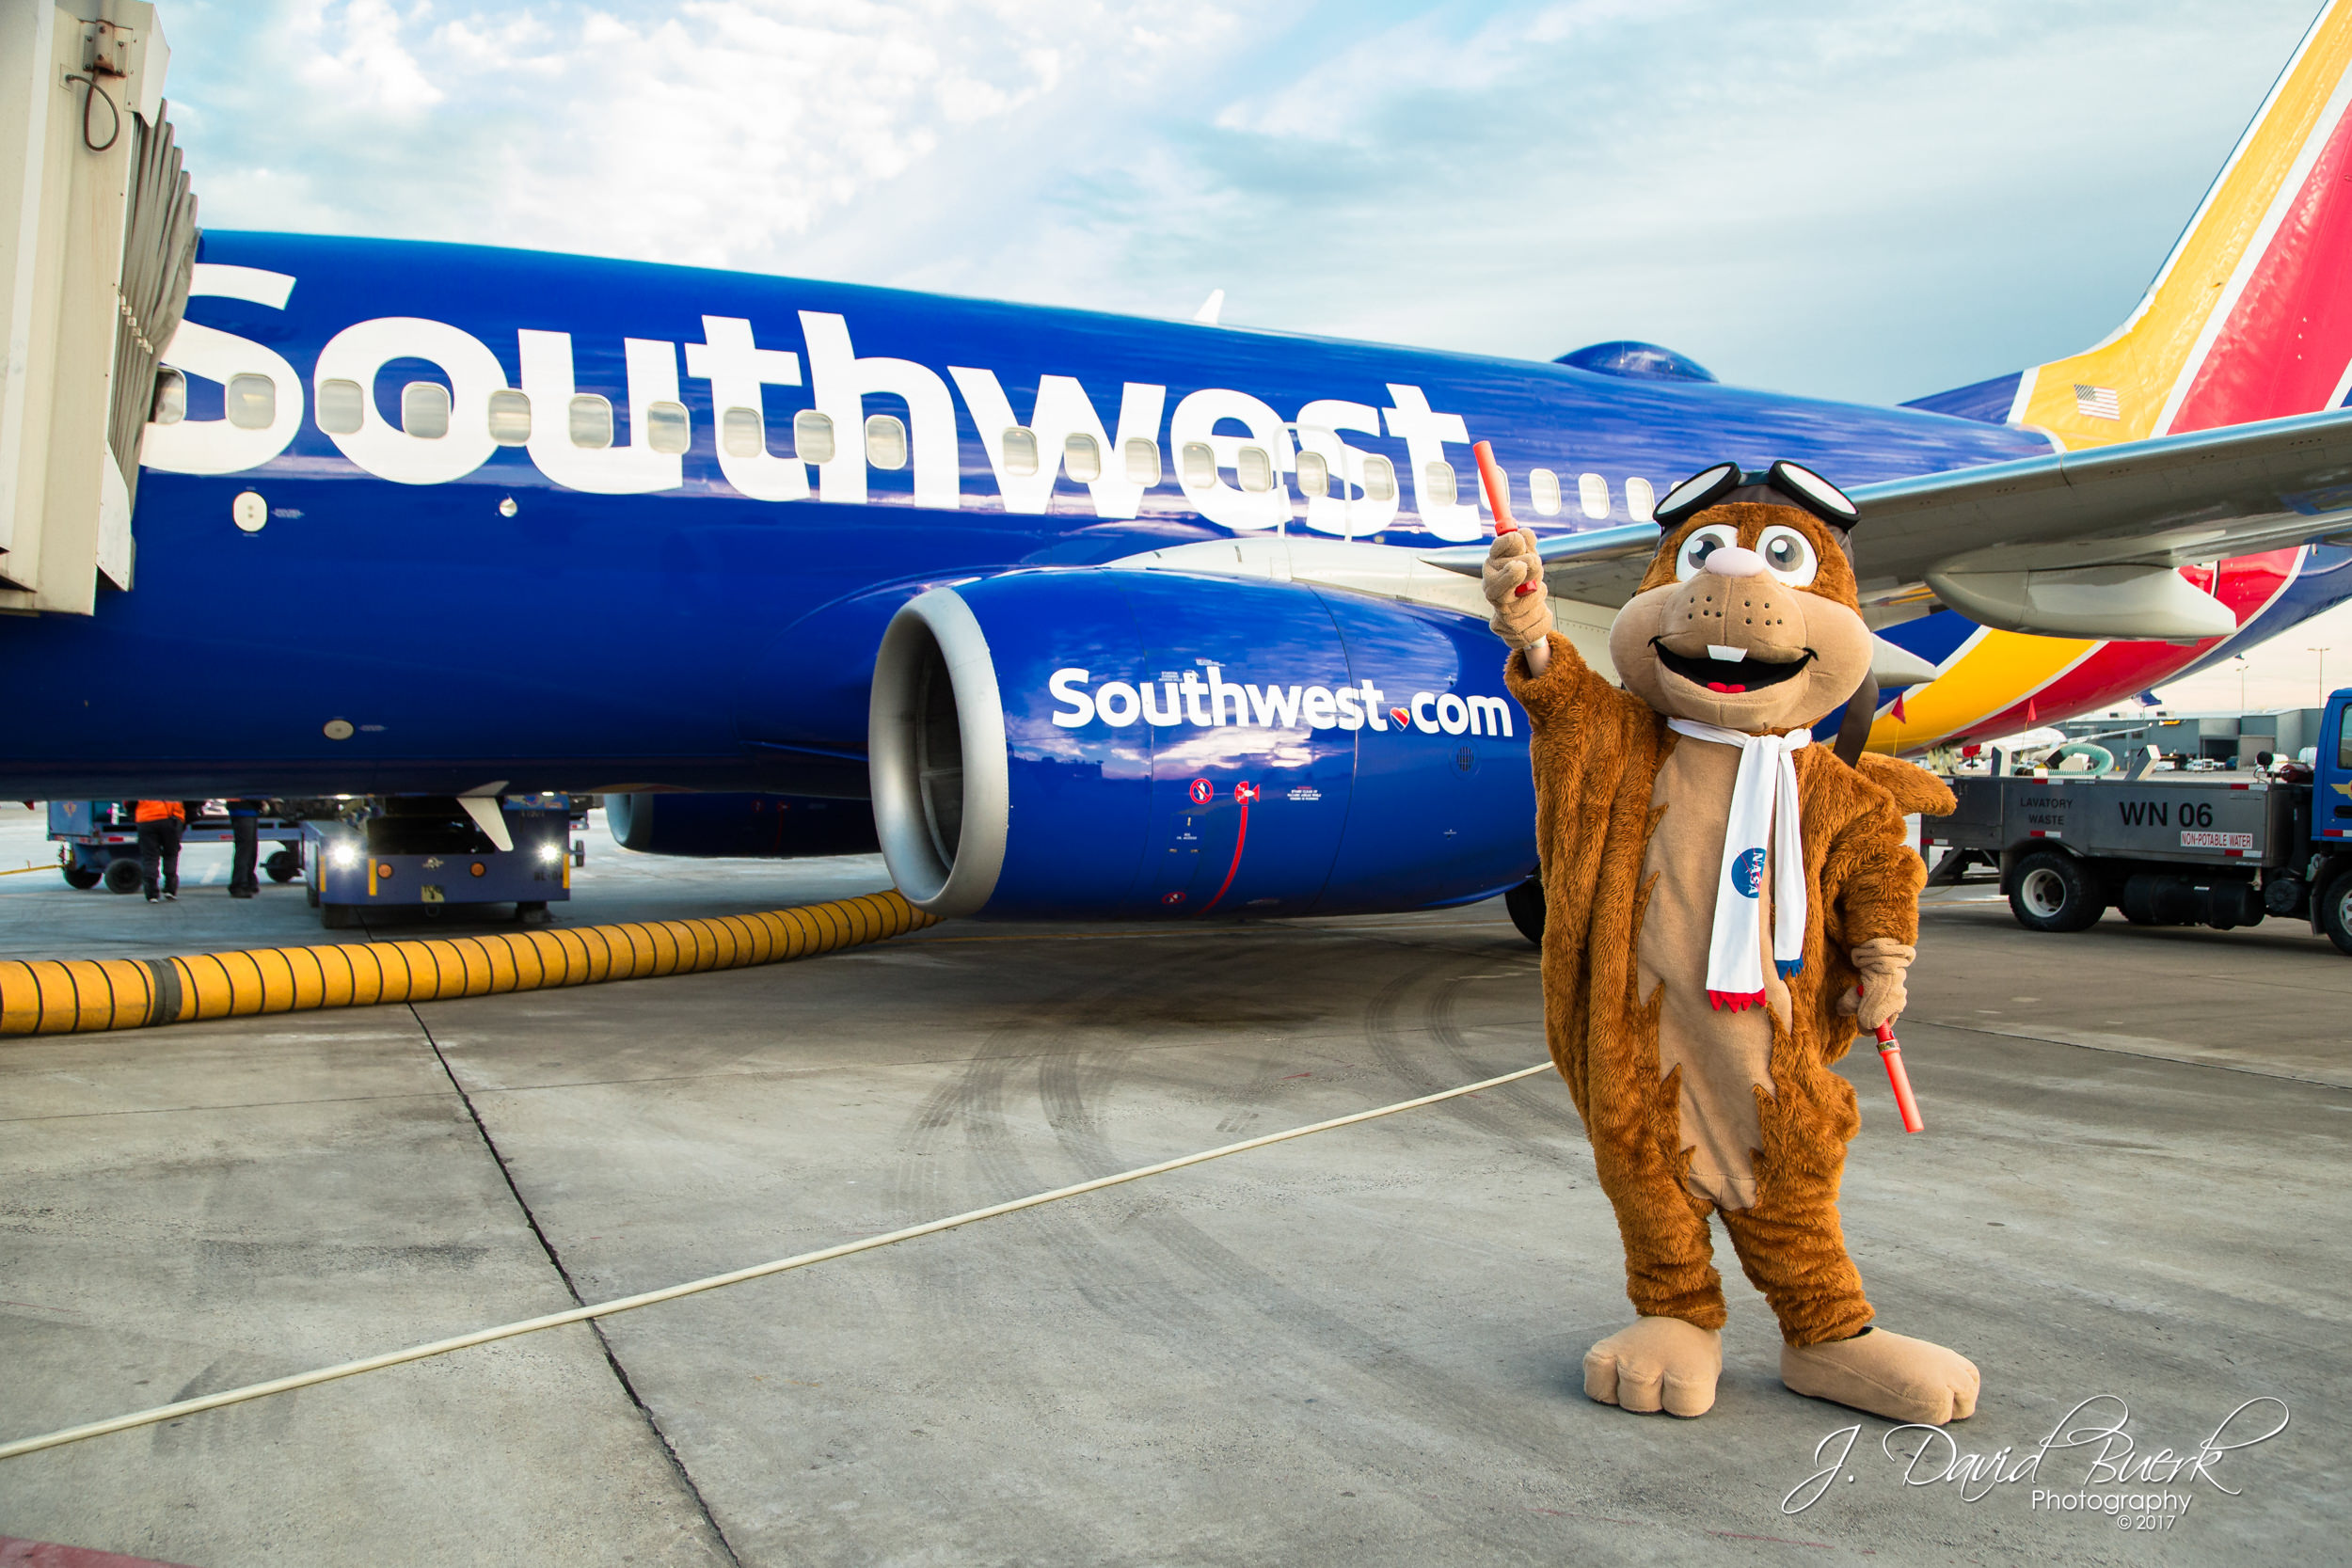 Orville, NASA's flying squirrel mascot, marshals in a Southwest Airlines 737 at Washington Dulles International Airport.